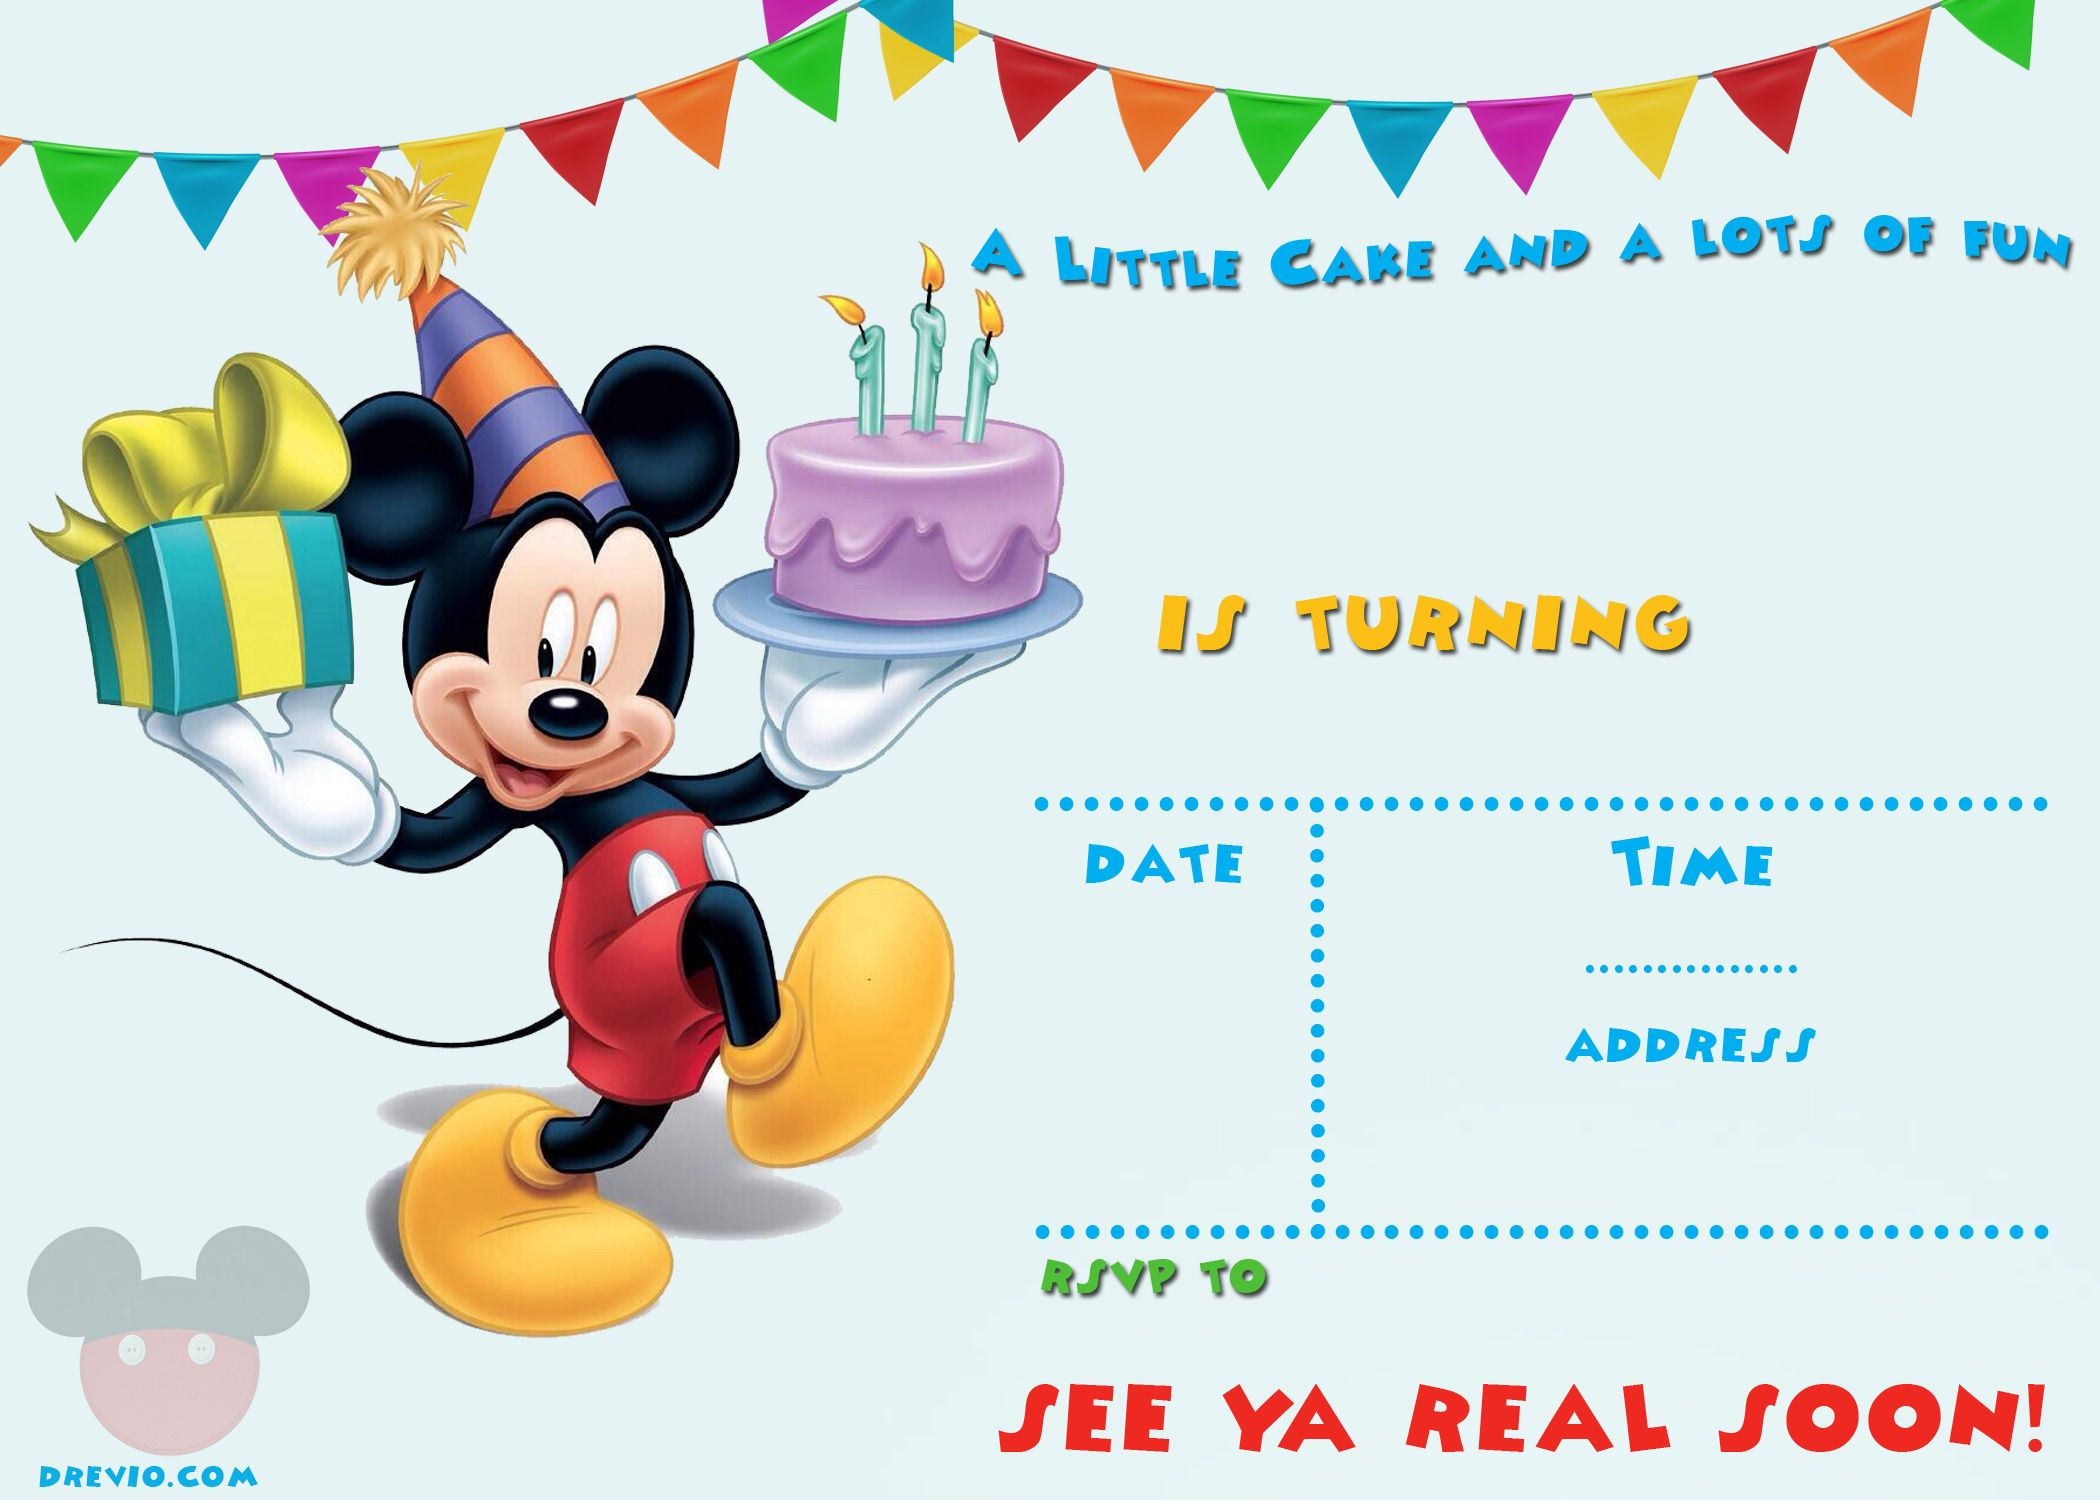 FREE-Printable-Mickey-Mouse-Party-Invitation-Template – Drevio ...